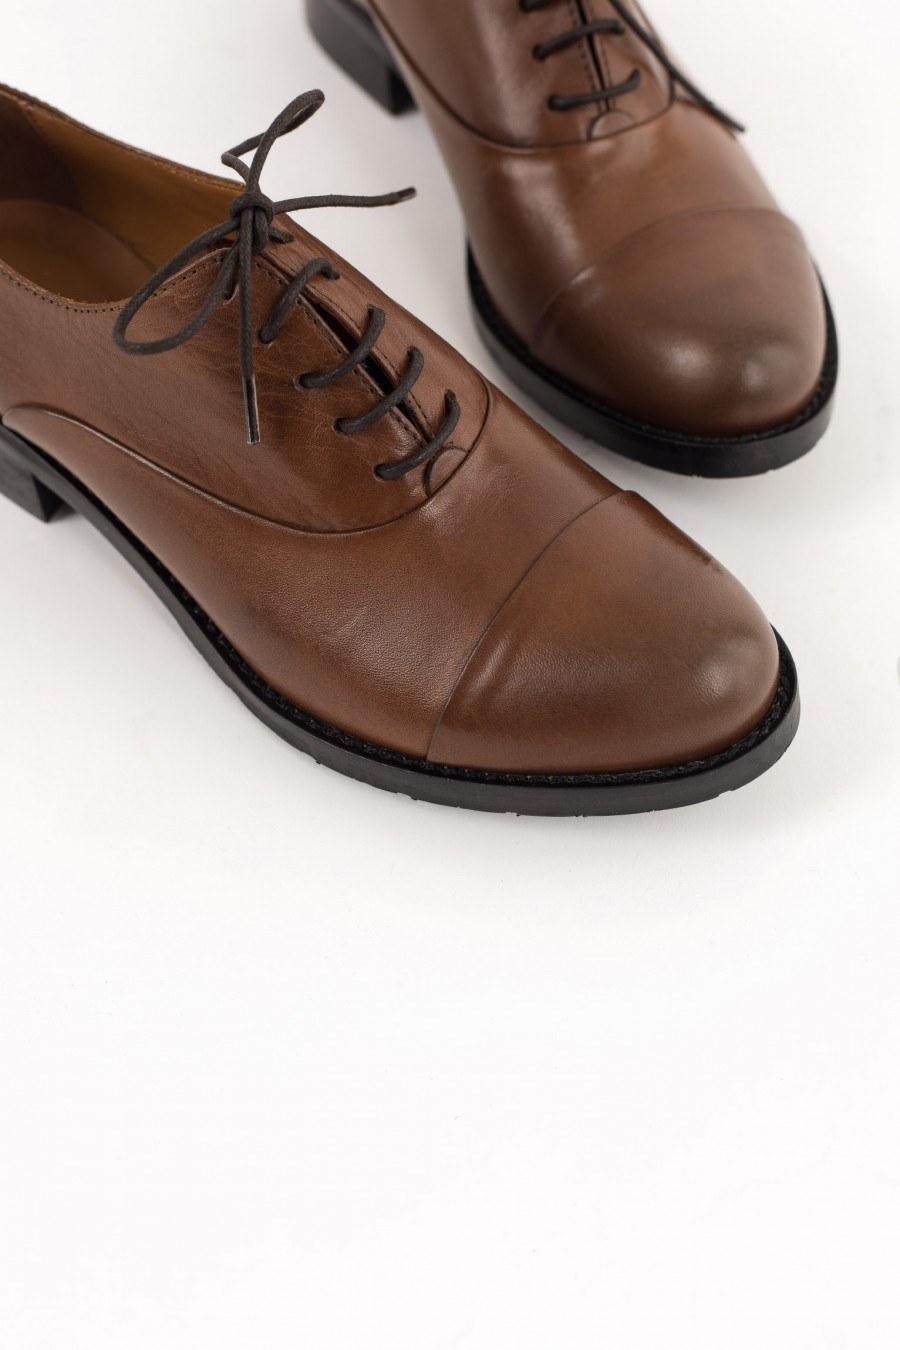 Rounded toe brown leather shoes